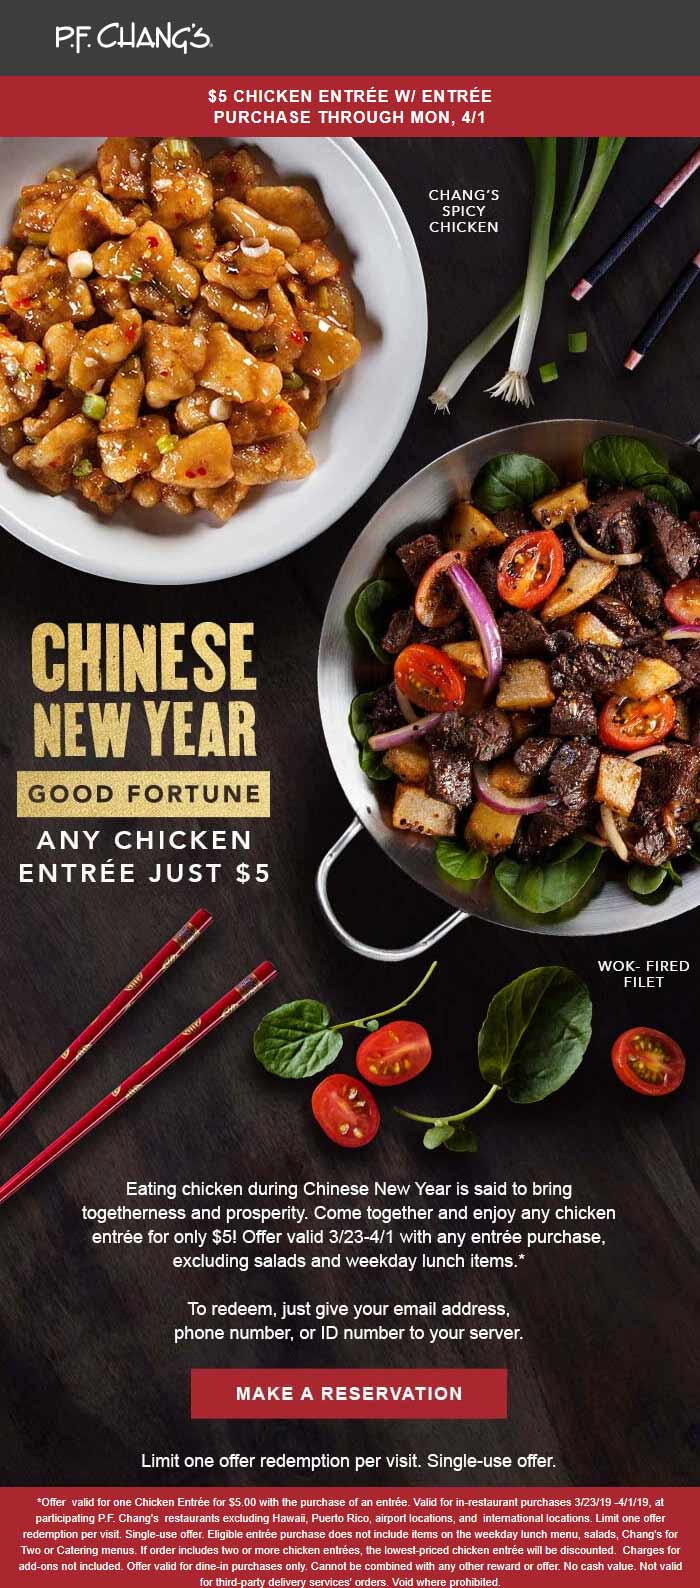 P.F. Changs Coupon February 2020 $5 chicken entree with your entree at P.F. Changs